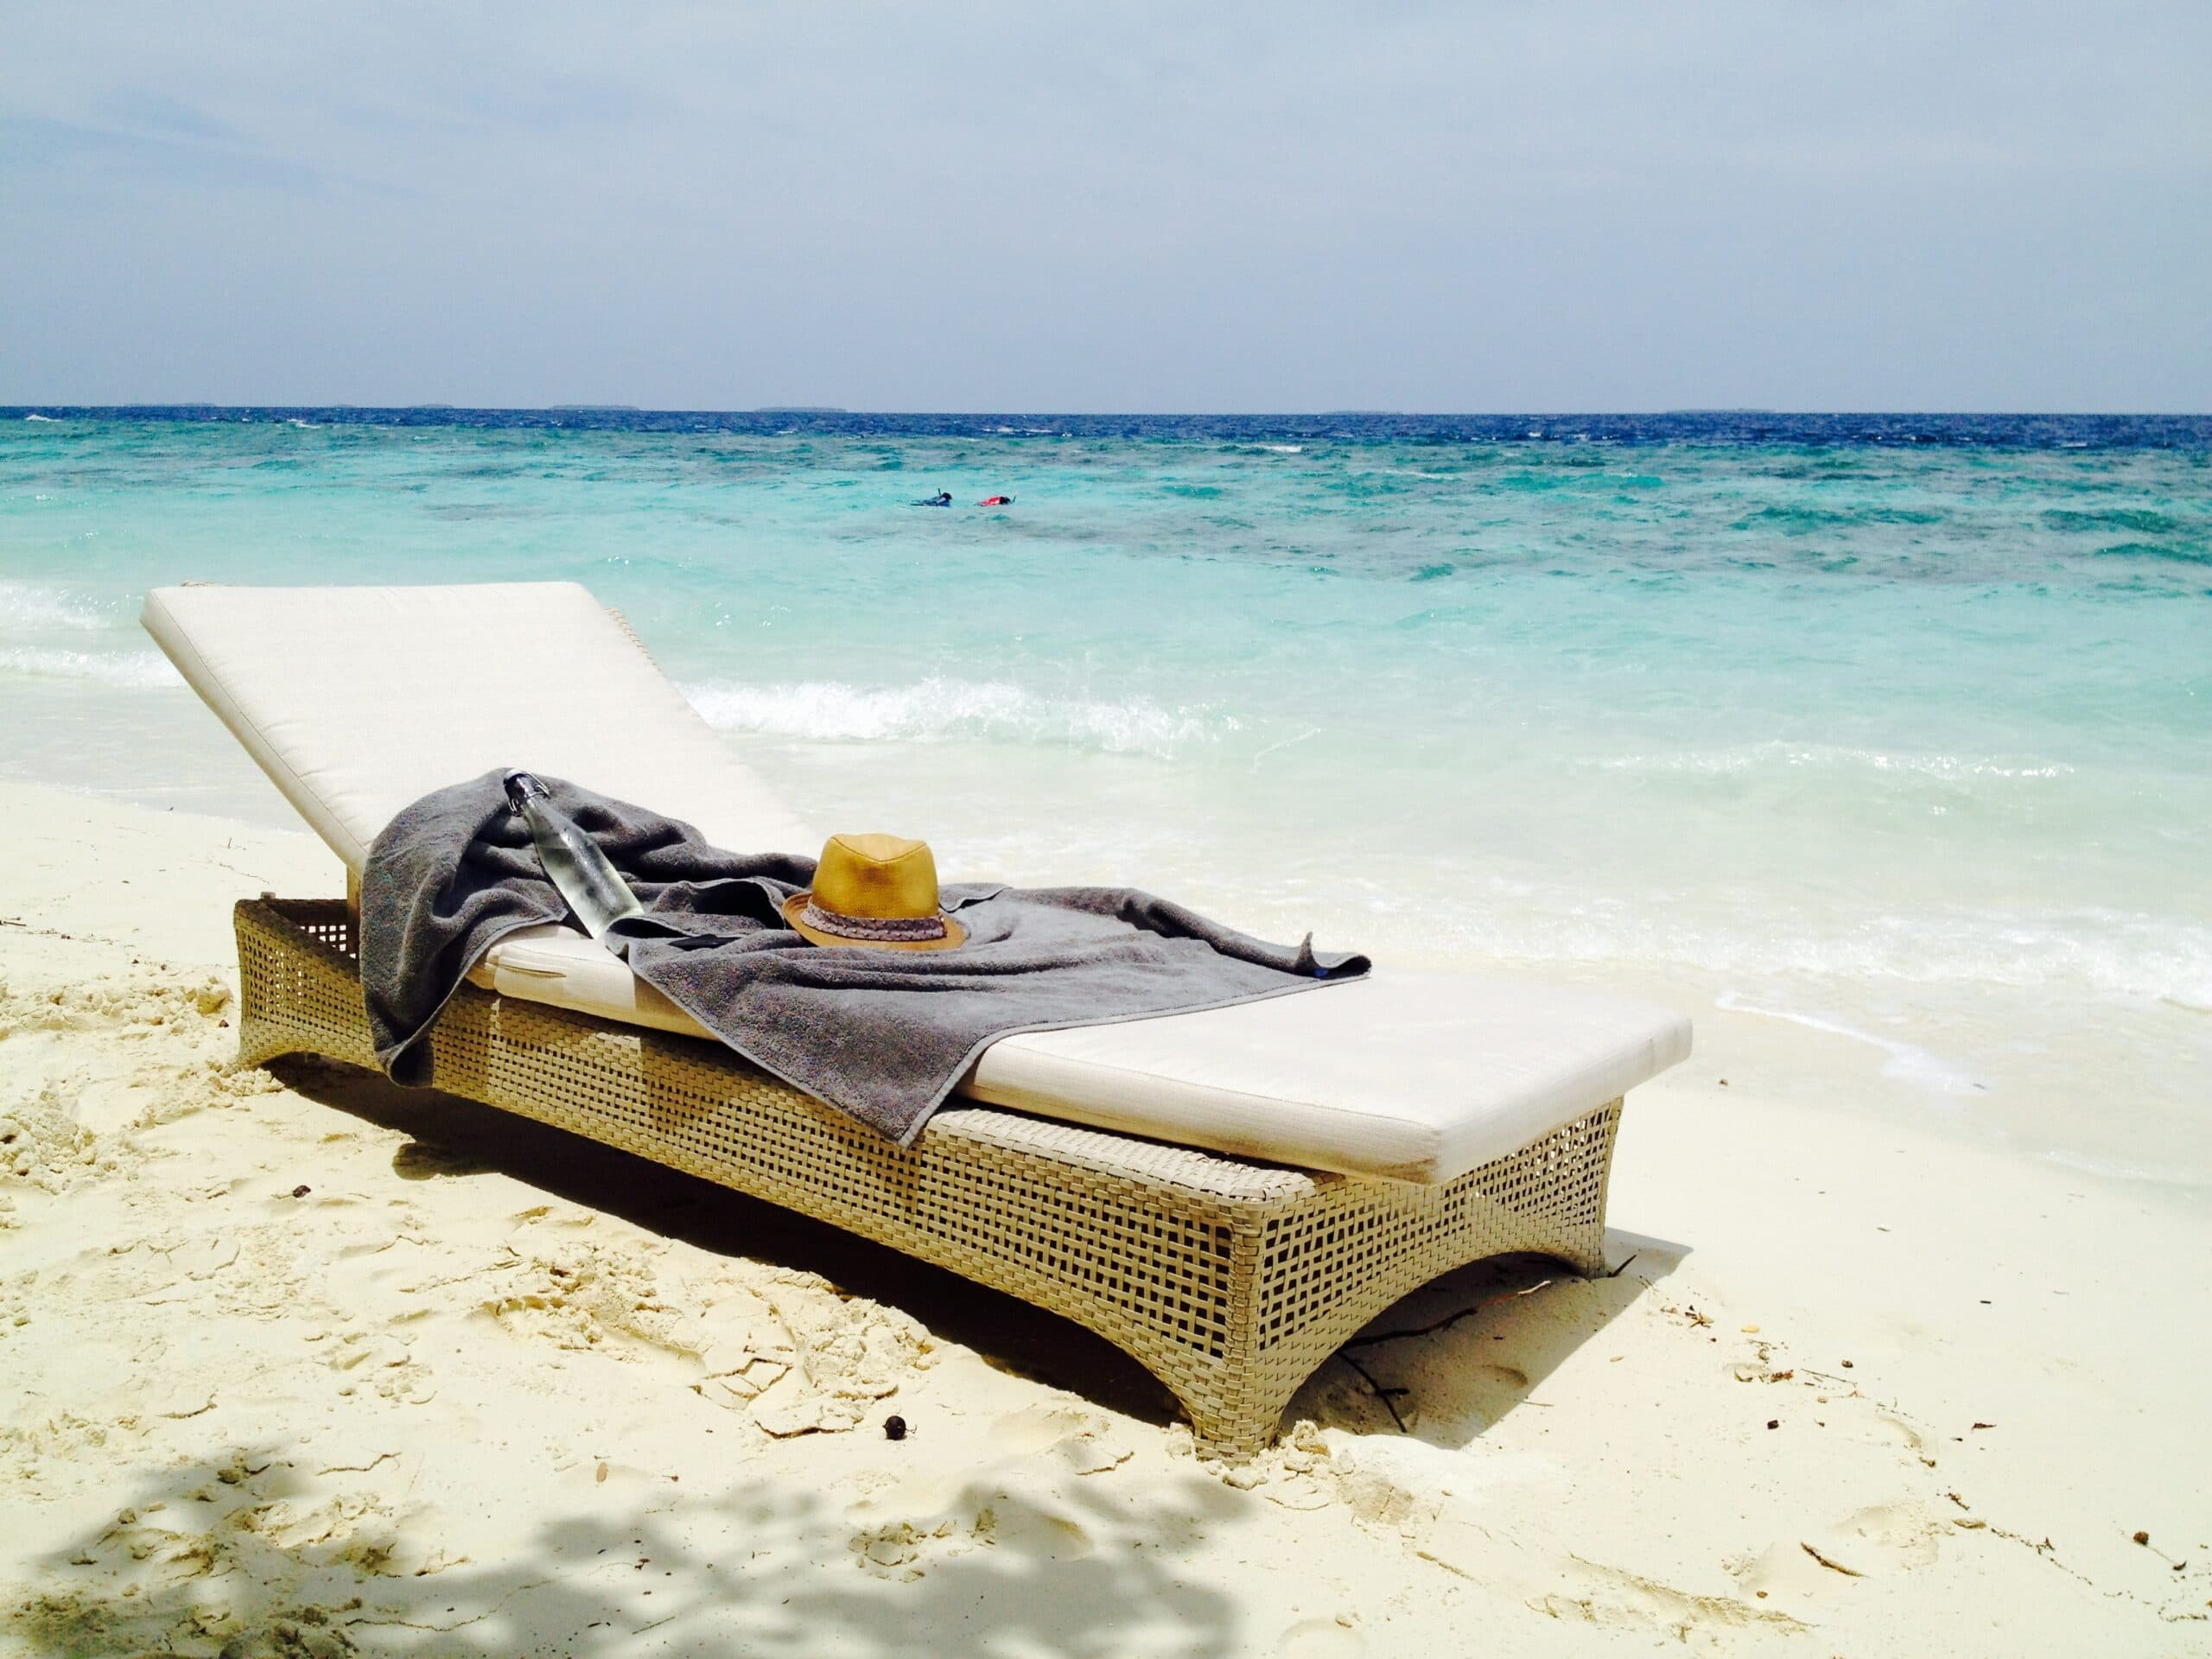 Typical beach set up in the Maldives